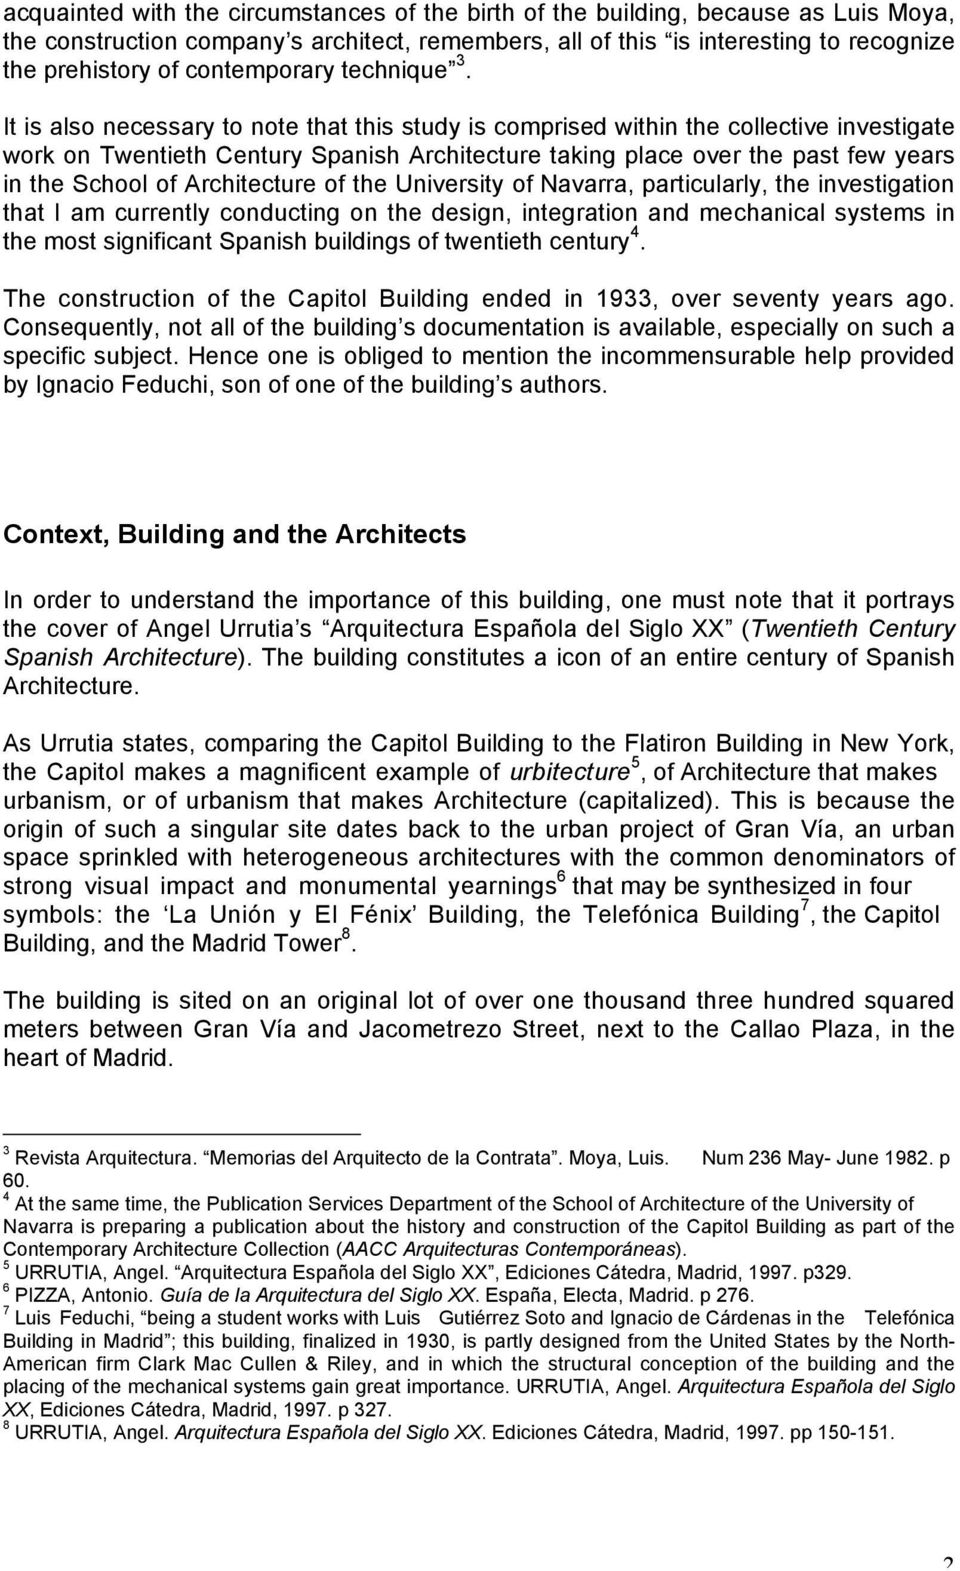 It is also necessary to note that this study is comprised within the collective investigate work on Twentieth Century Spanish Architecture taking place over the past few years in the School of